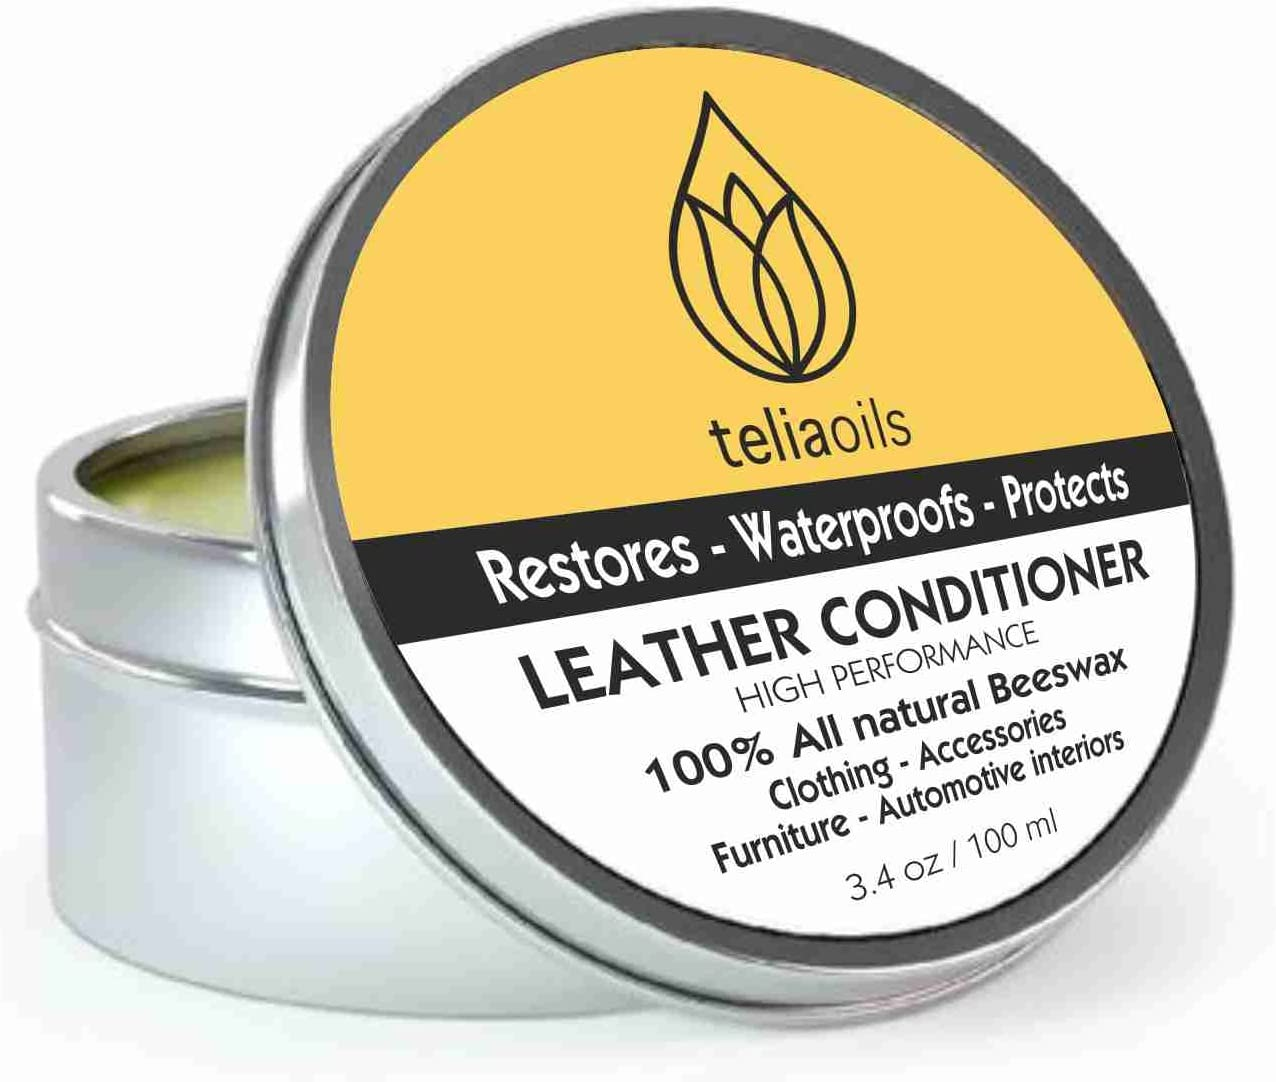 Teliaoils Leather Conditioner - Natural Clear Leather Repair Care Balm for All Colors - Waterproofing Leather Salve Restorer, Softener & Protector - for Upholstery, Furniture, Shoes, Sofa & More